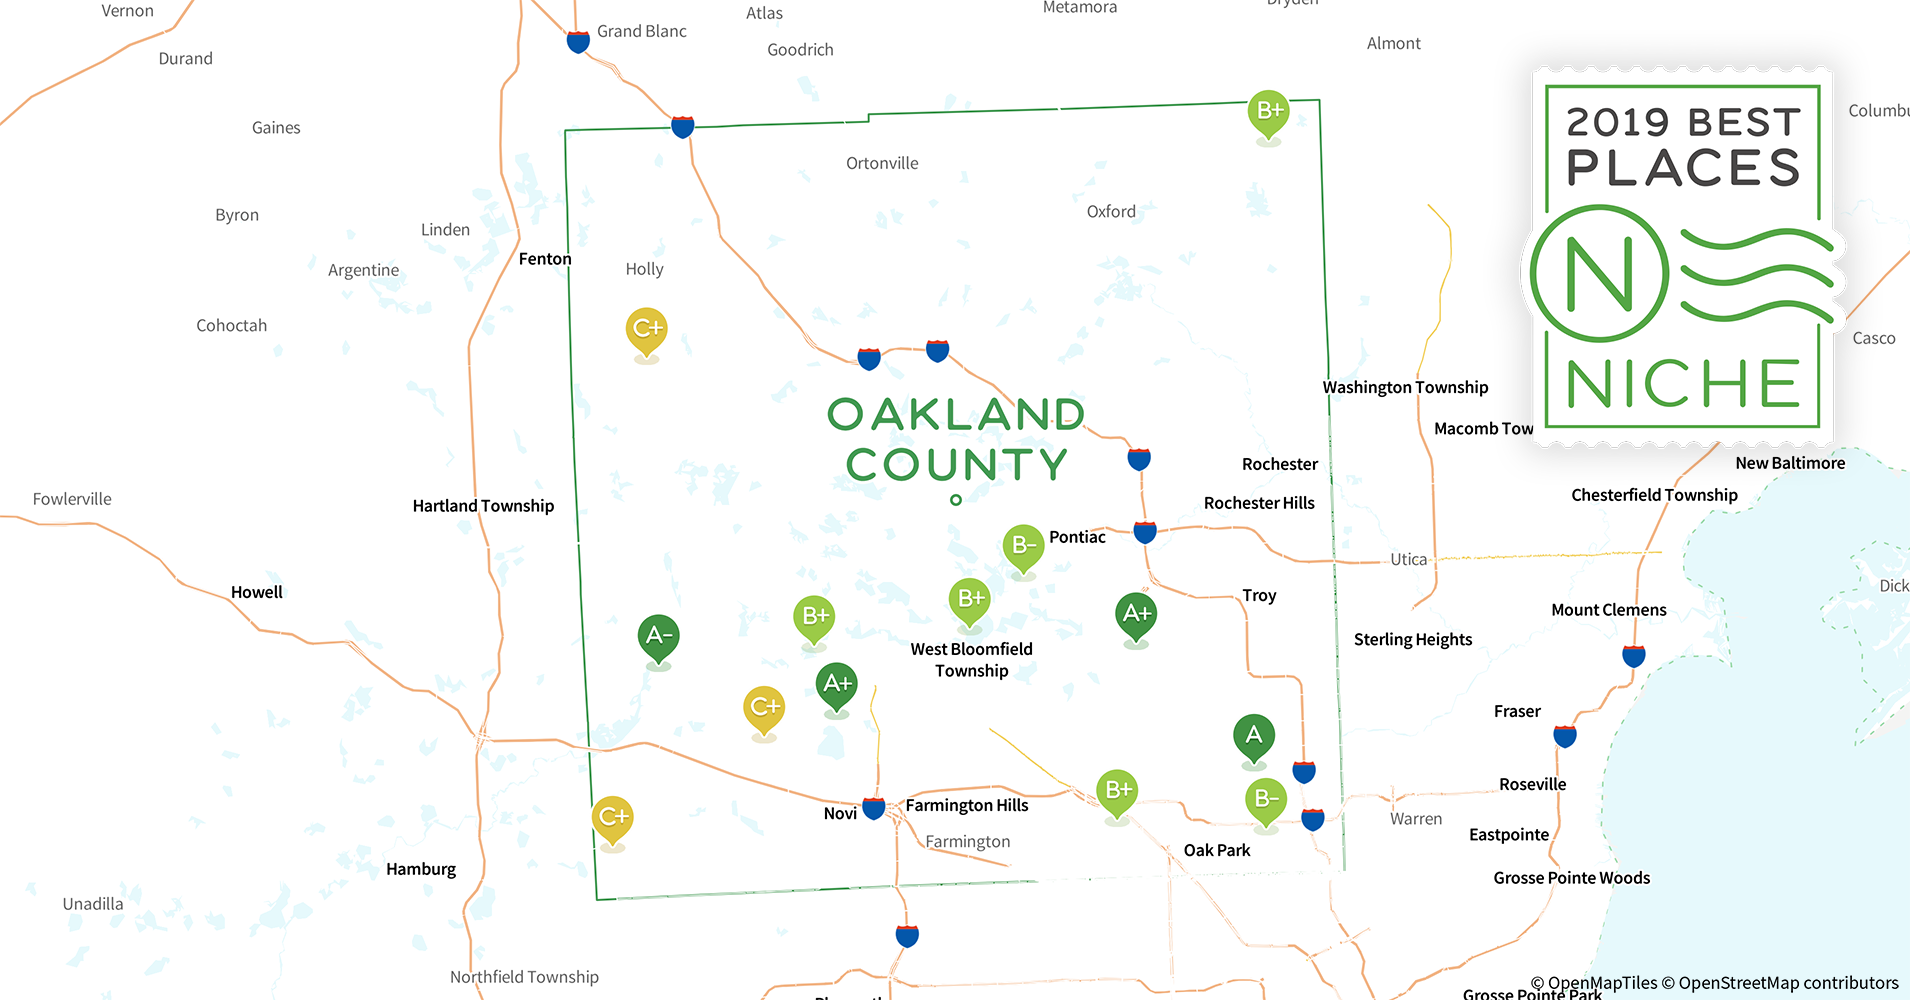 2019 Best Places to Live in Oakland County, MI - Niche